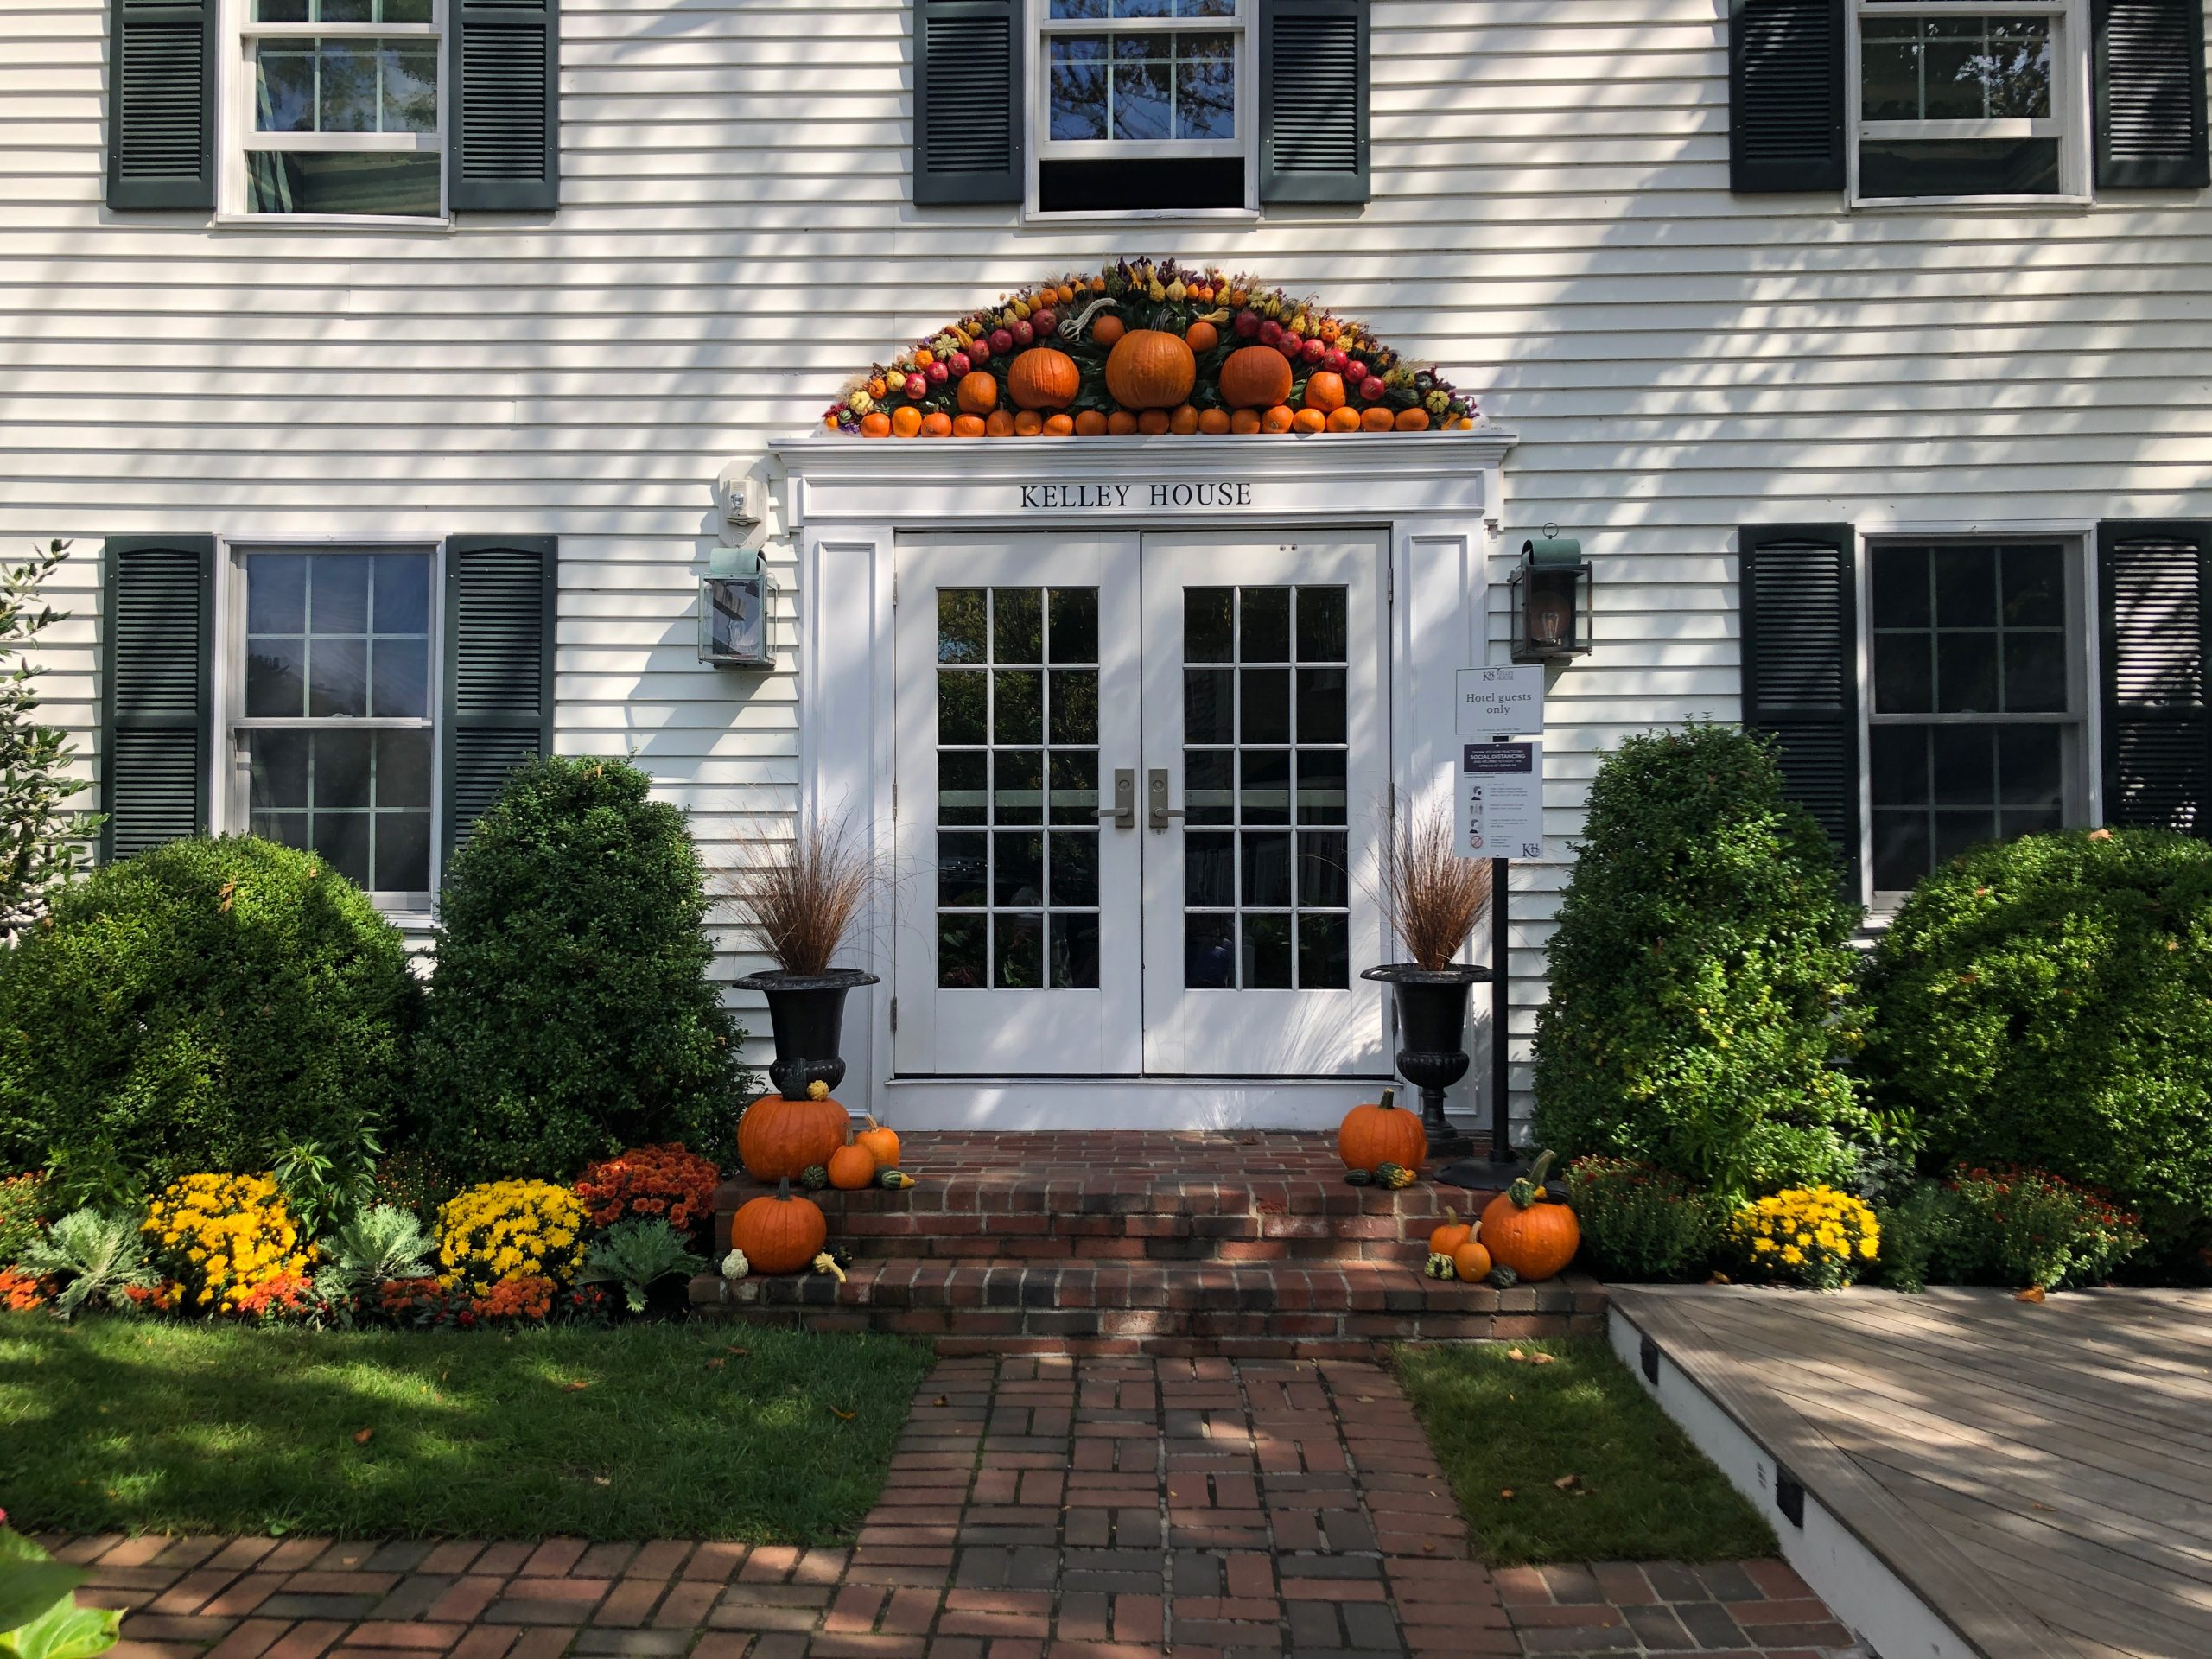 White Colonial Home with Pumpkin Decor Above Door